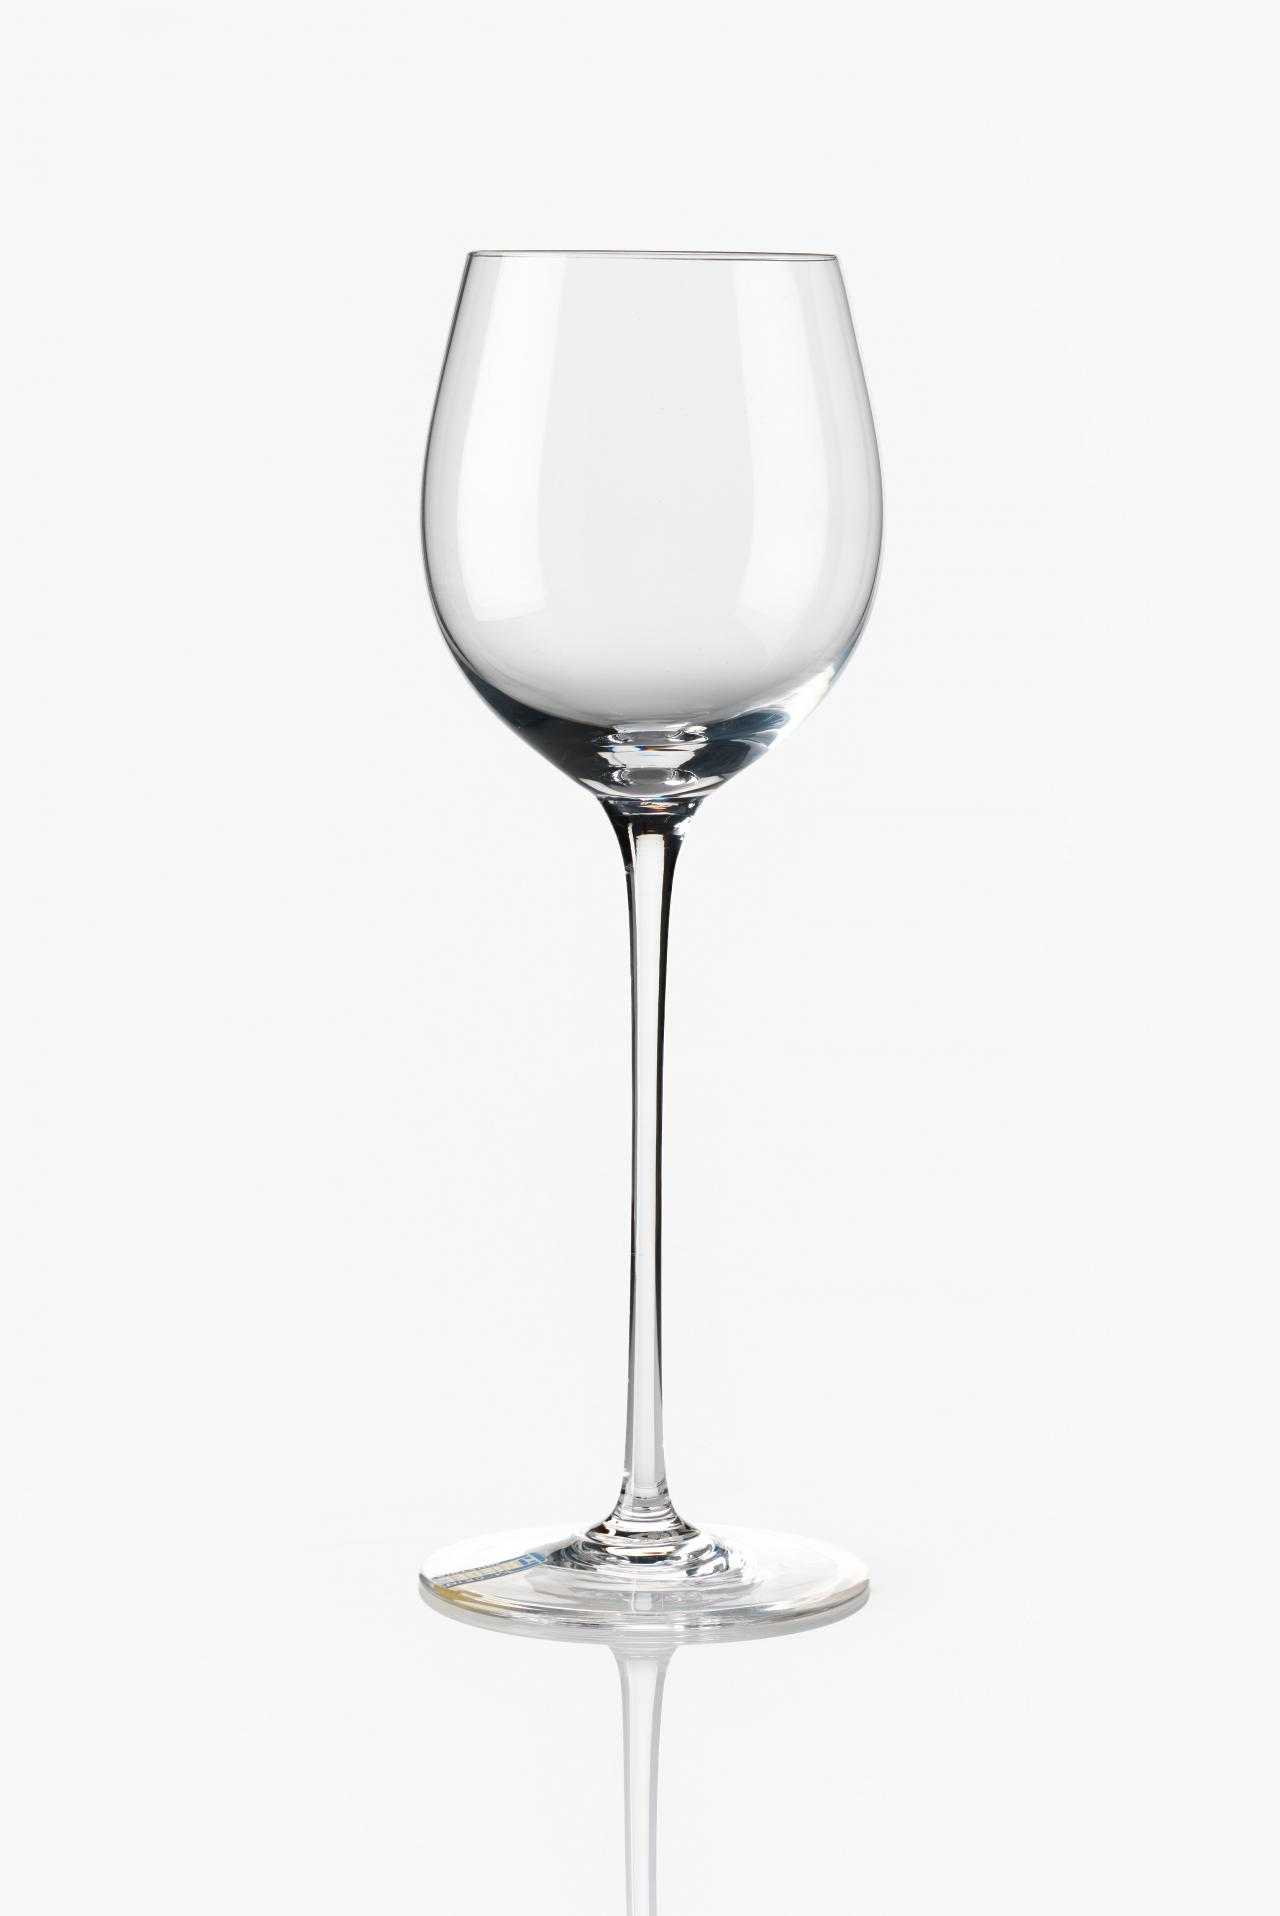 Exquisite wine service, goblet